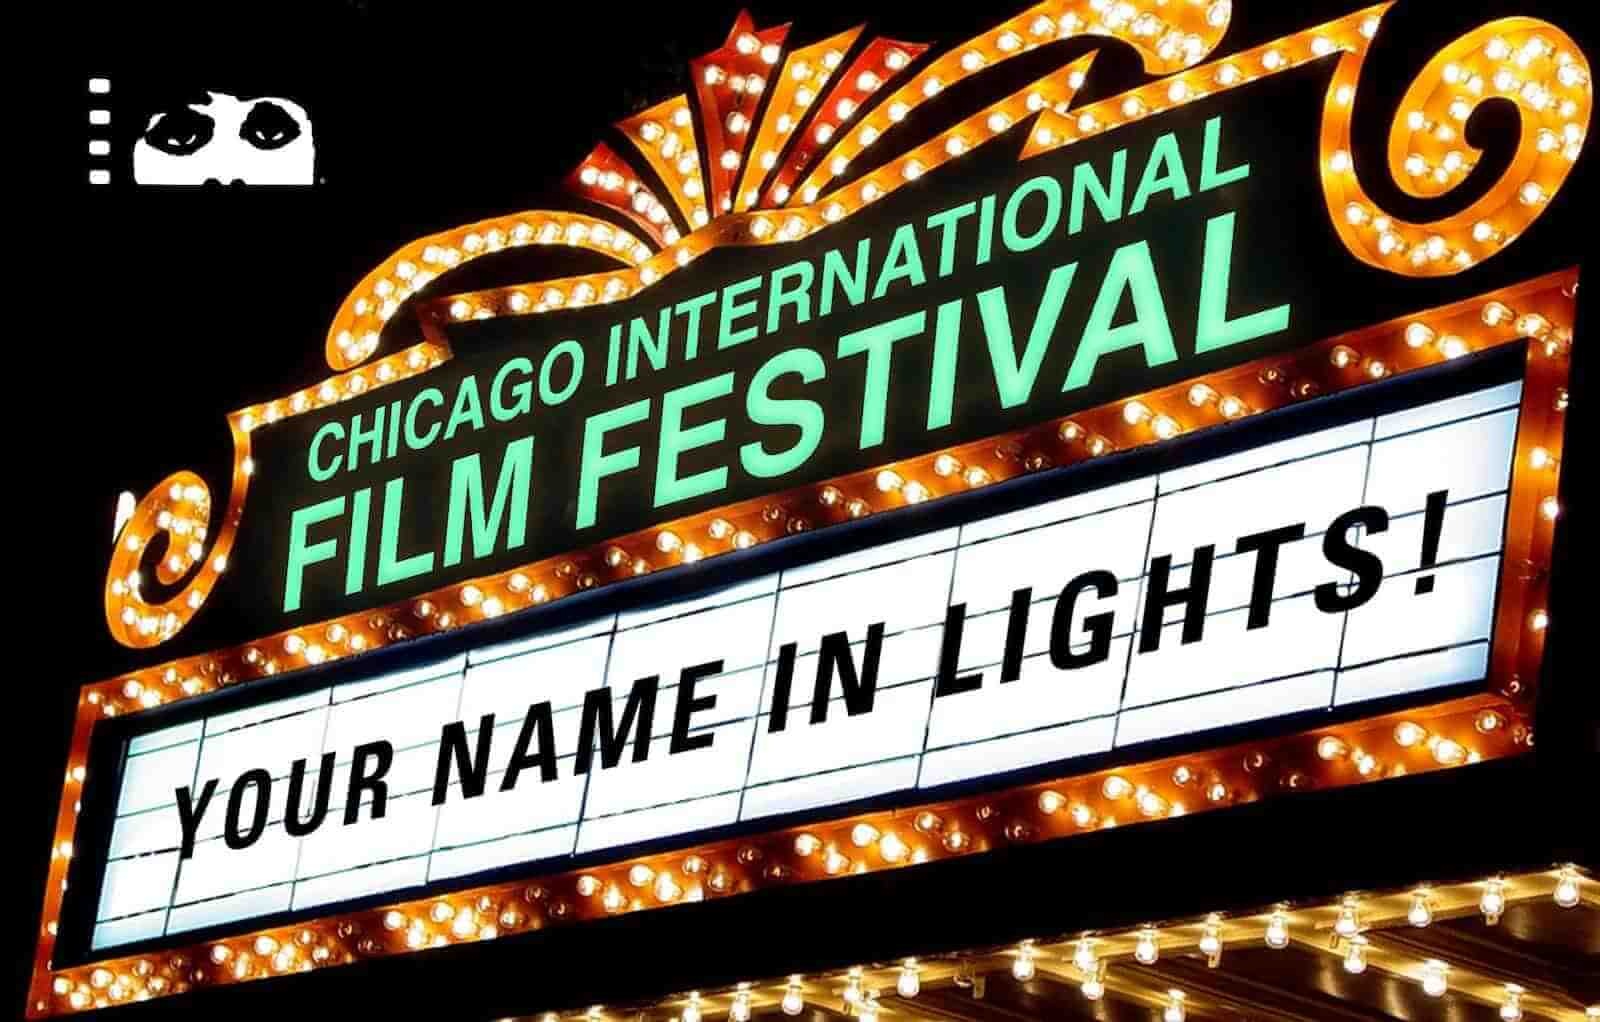 Best Film Festivals - Chicago Film Festivals